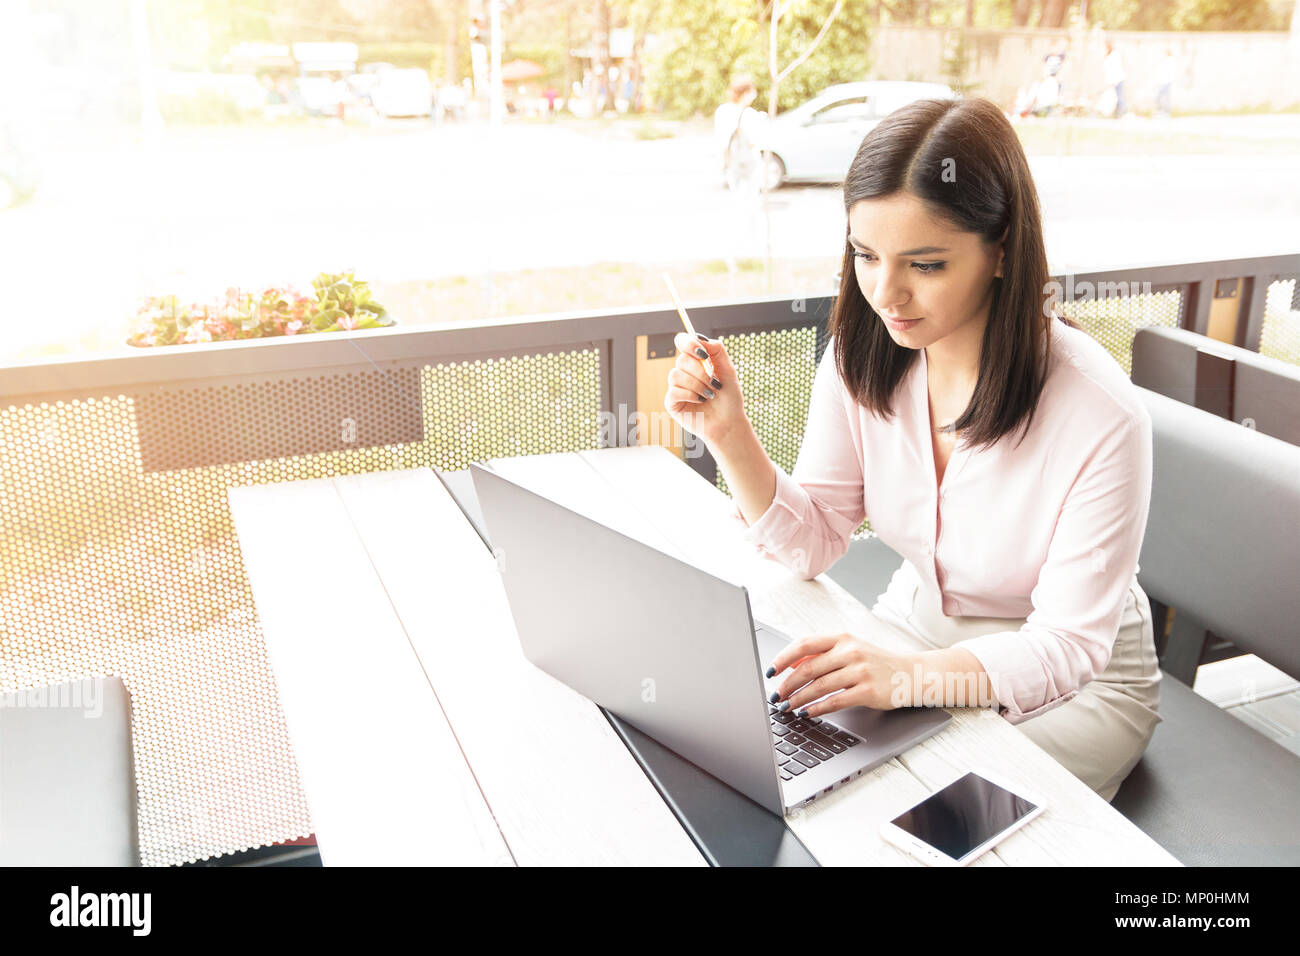 Image of young woman using laptop while sitting at cafe. - Stock Image